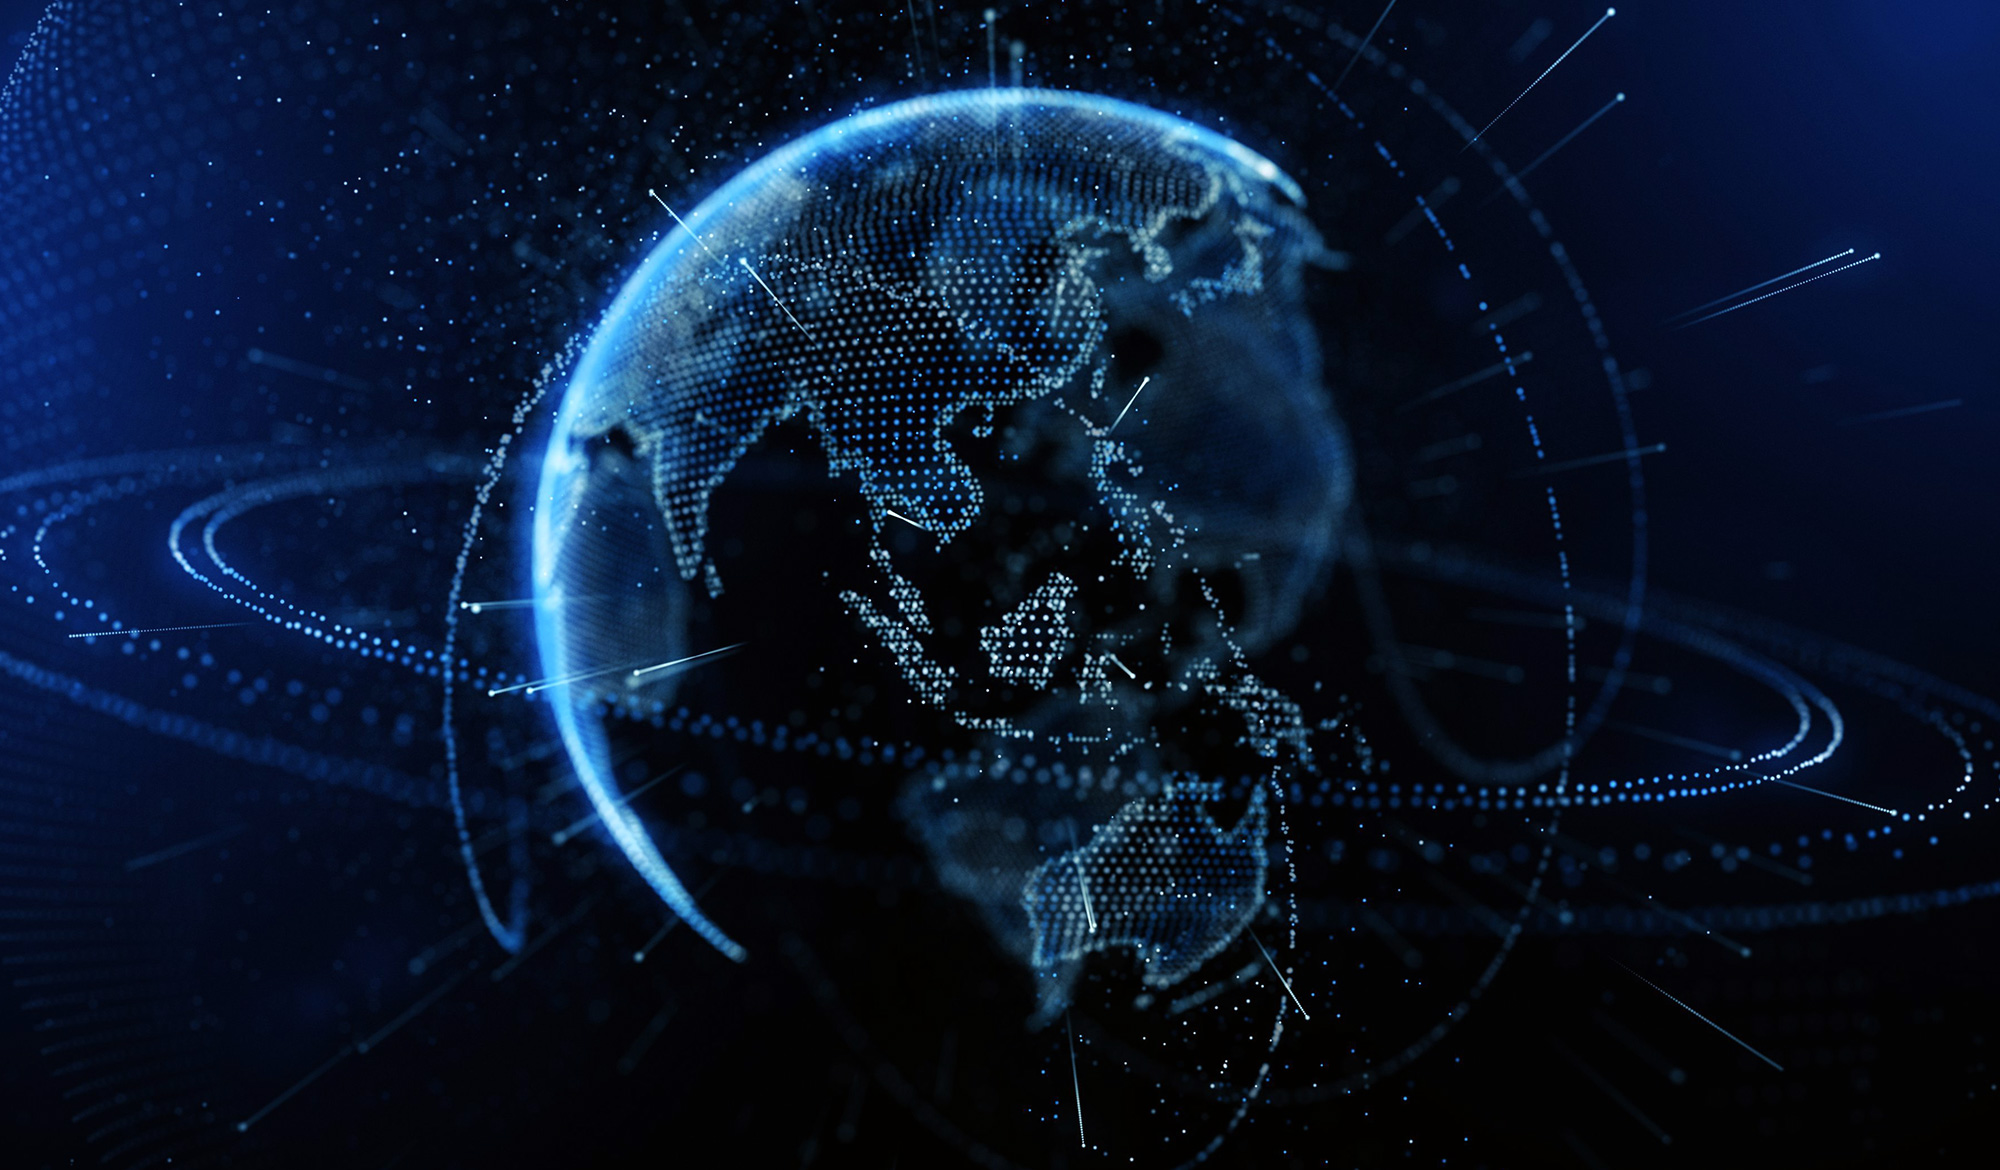 MiTek's Global Presence - A black graphic of space and a blue Earth